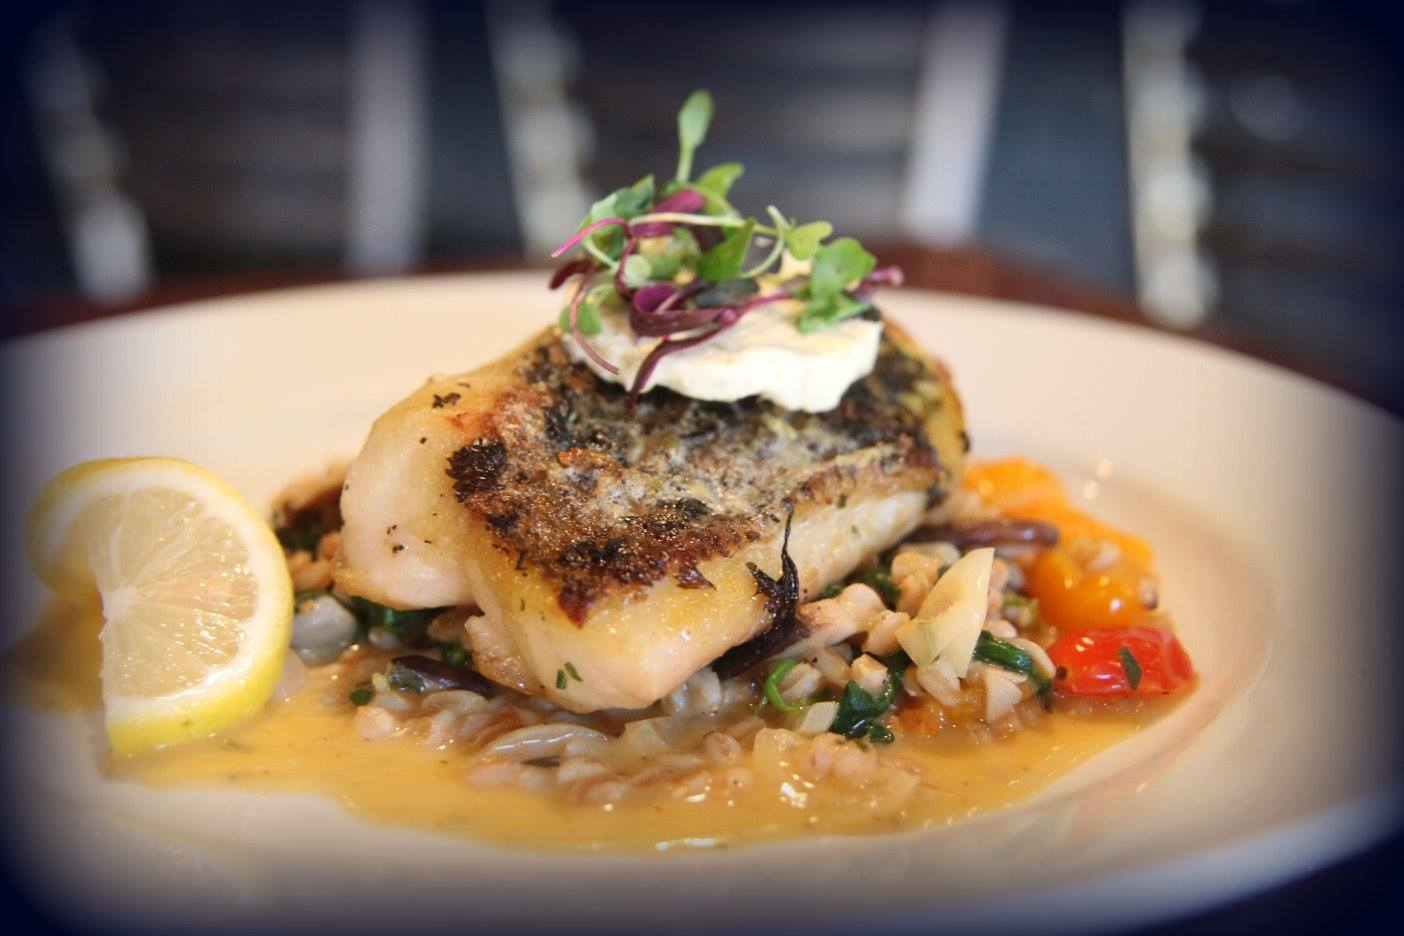 Pan seared cod over white beans and roasted peppers with a lemon wedge